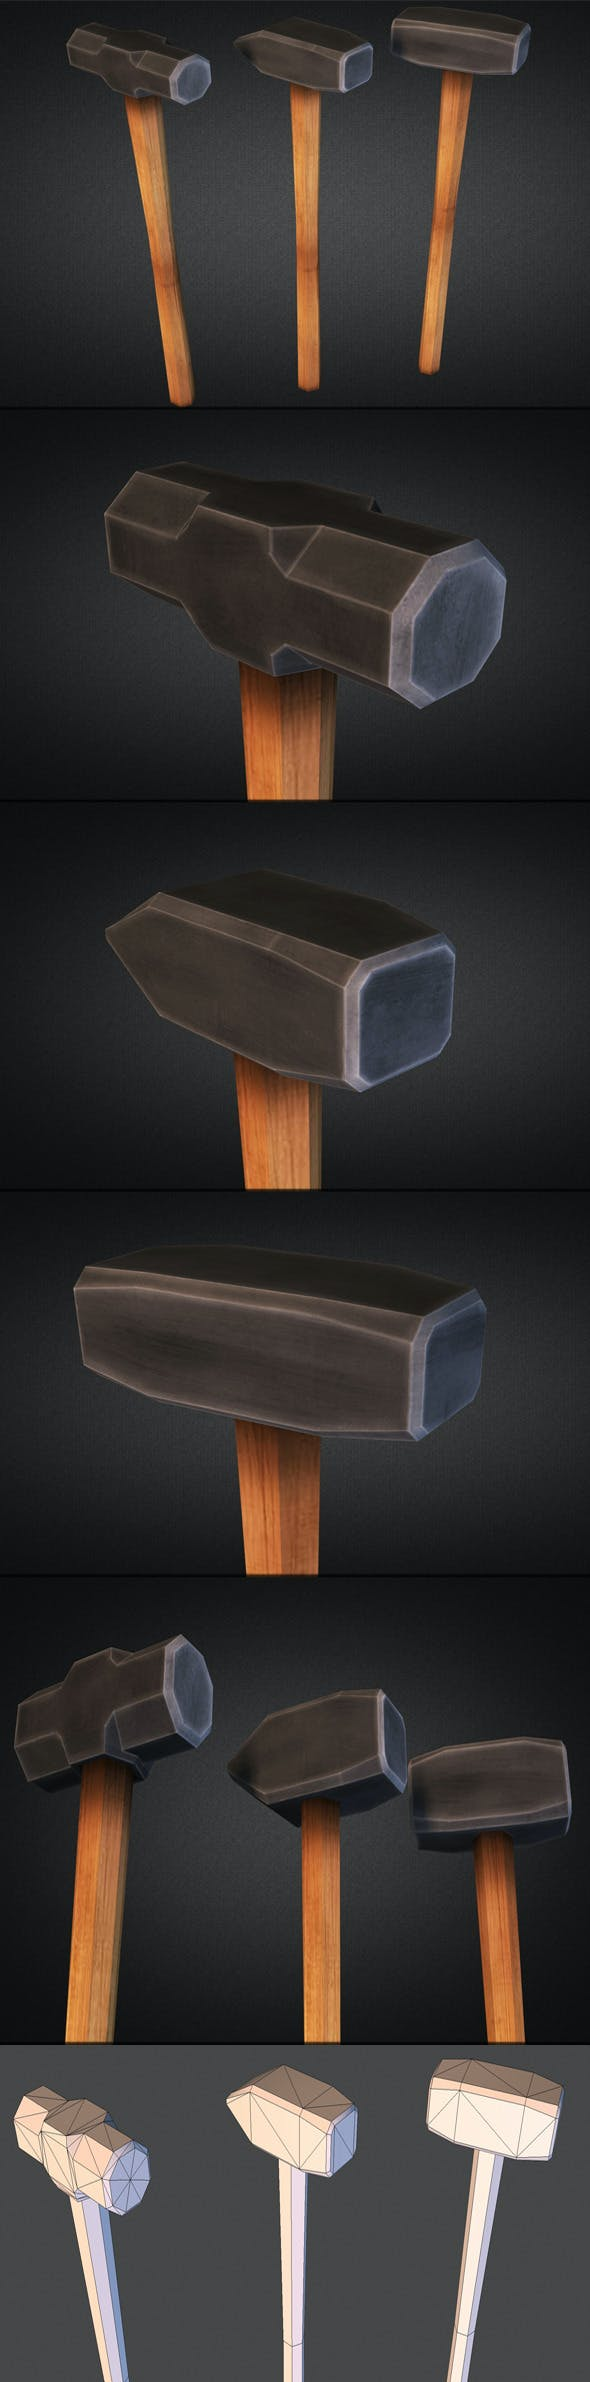 Sledgehammers - Low Poly - 3DOcean Item for Sale